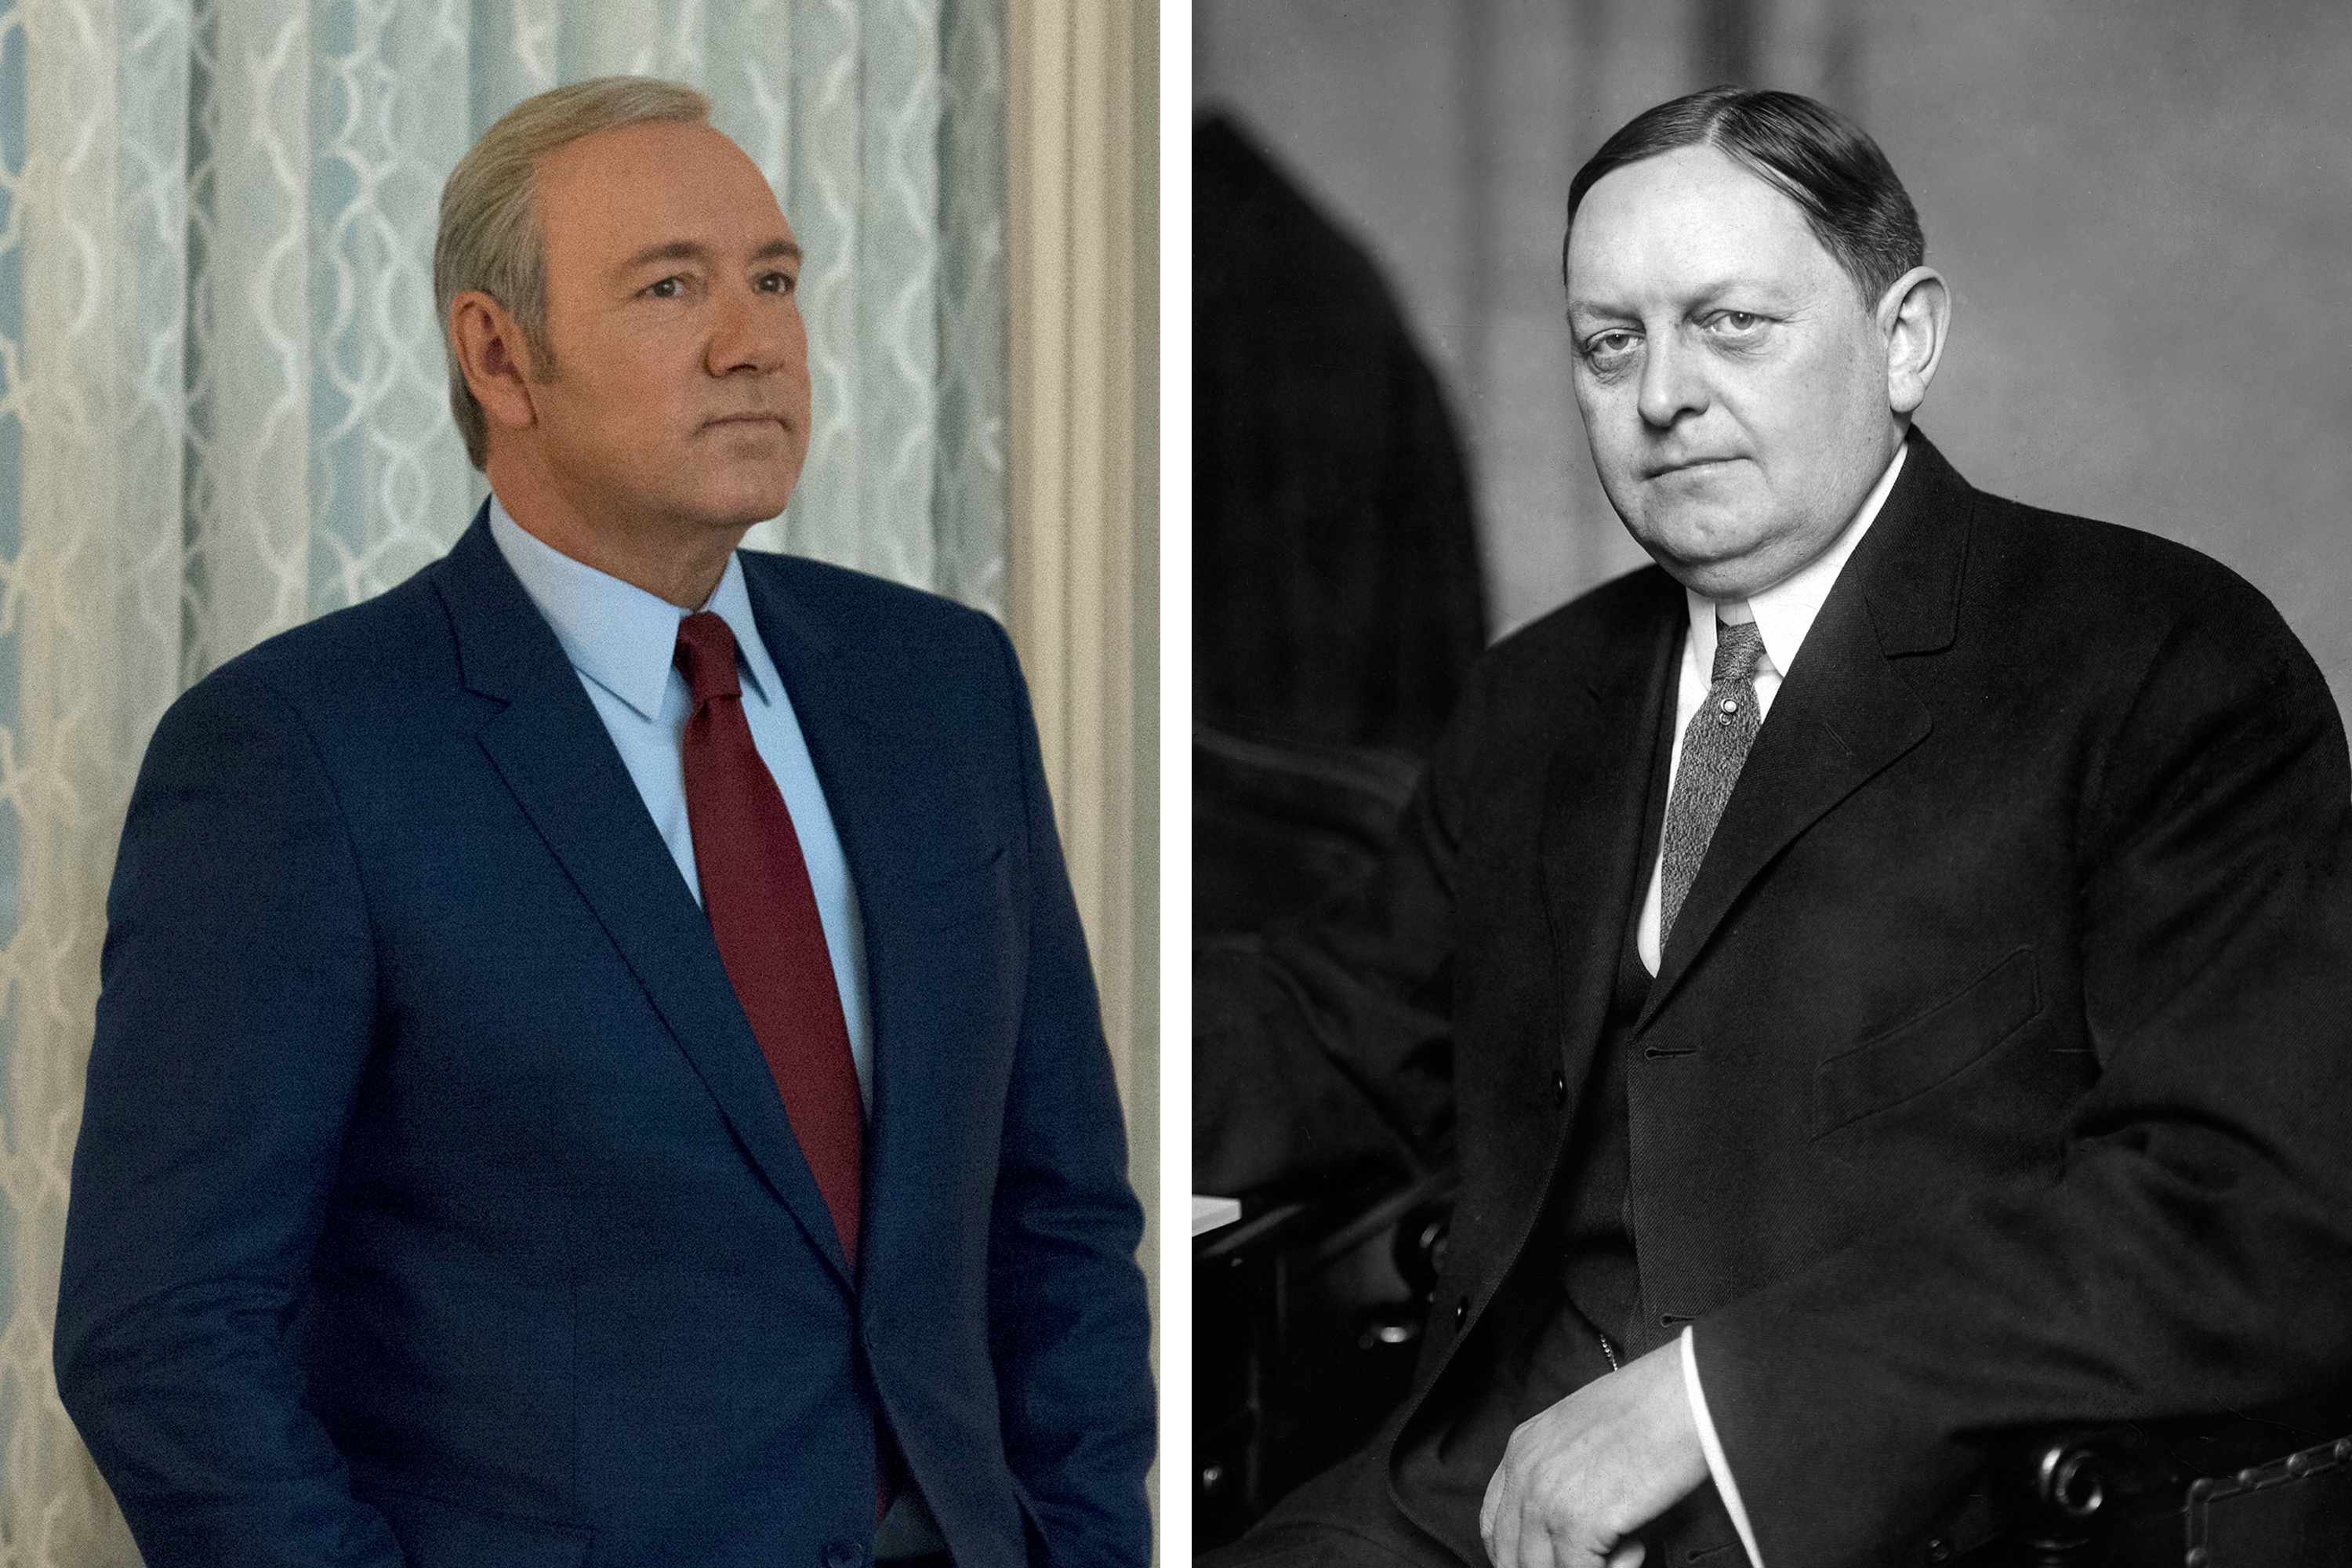 (left) Kevin Spacey as Frank Underwood in Season 4 of House of Cards on Netflix; (right) Oscar Underwood, 1912.